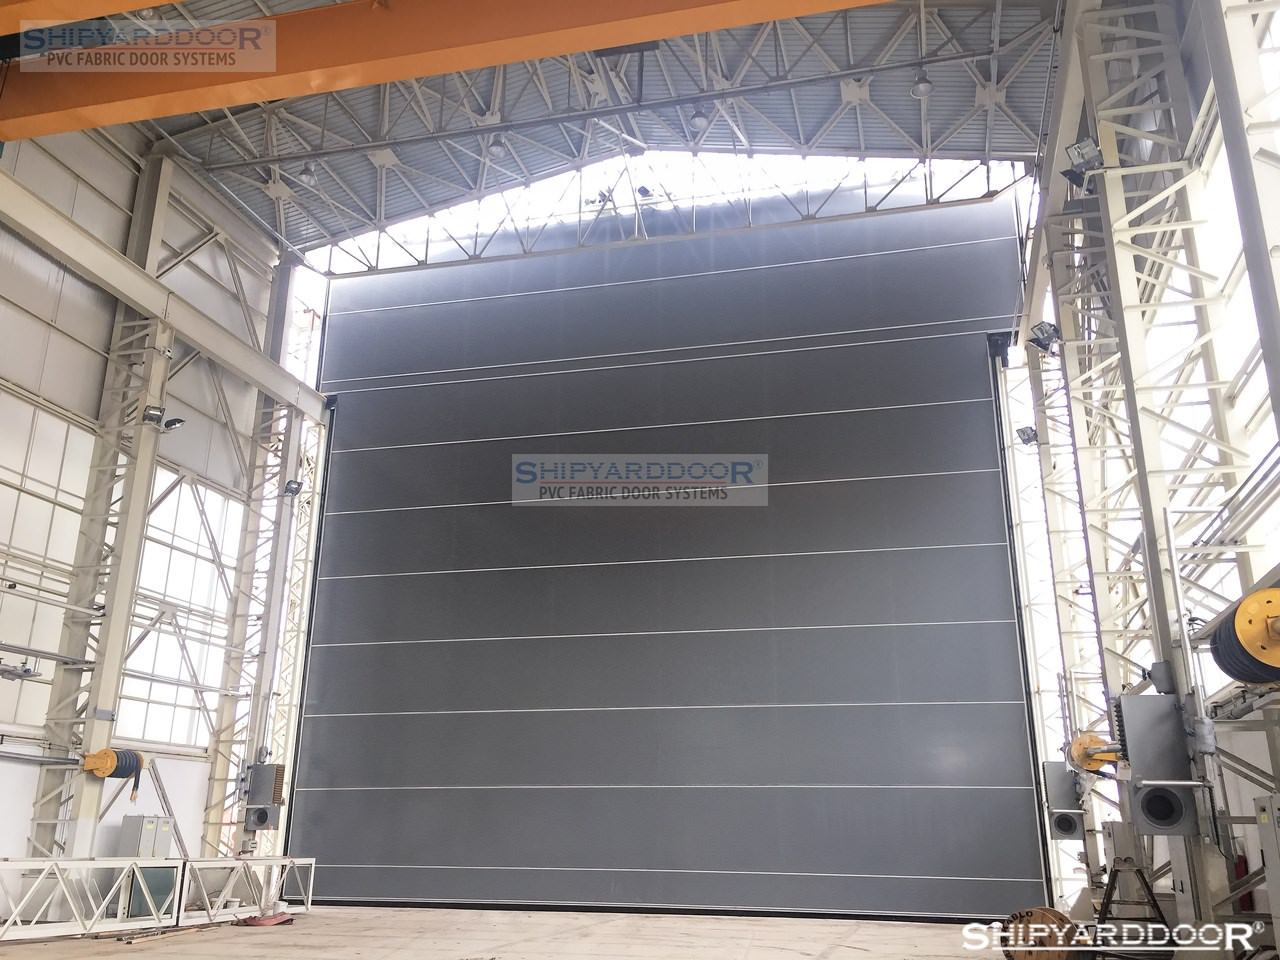 hangar door s22 en shipyarddoor